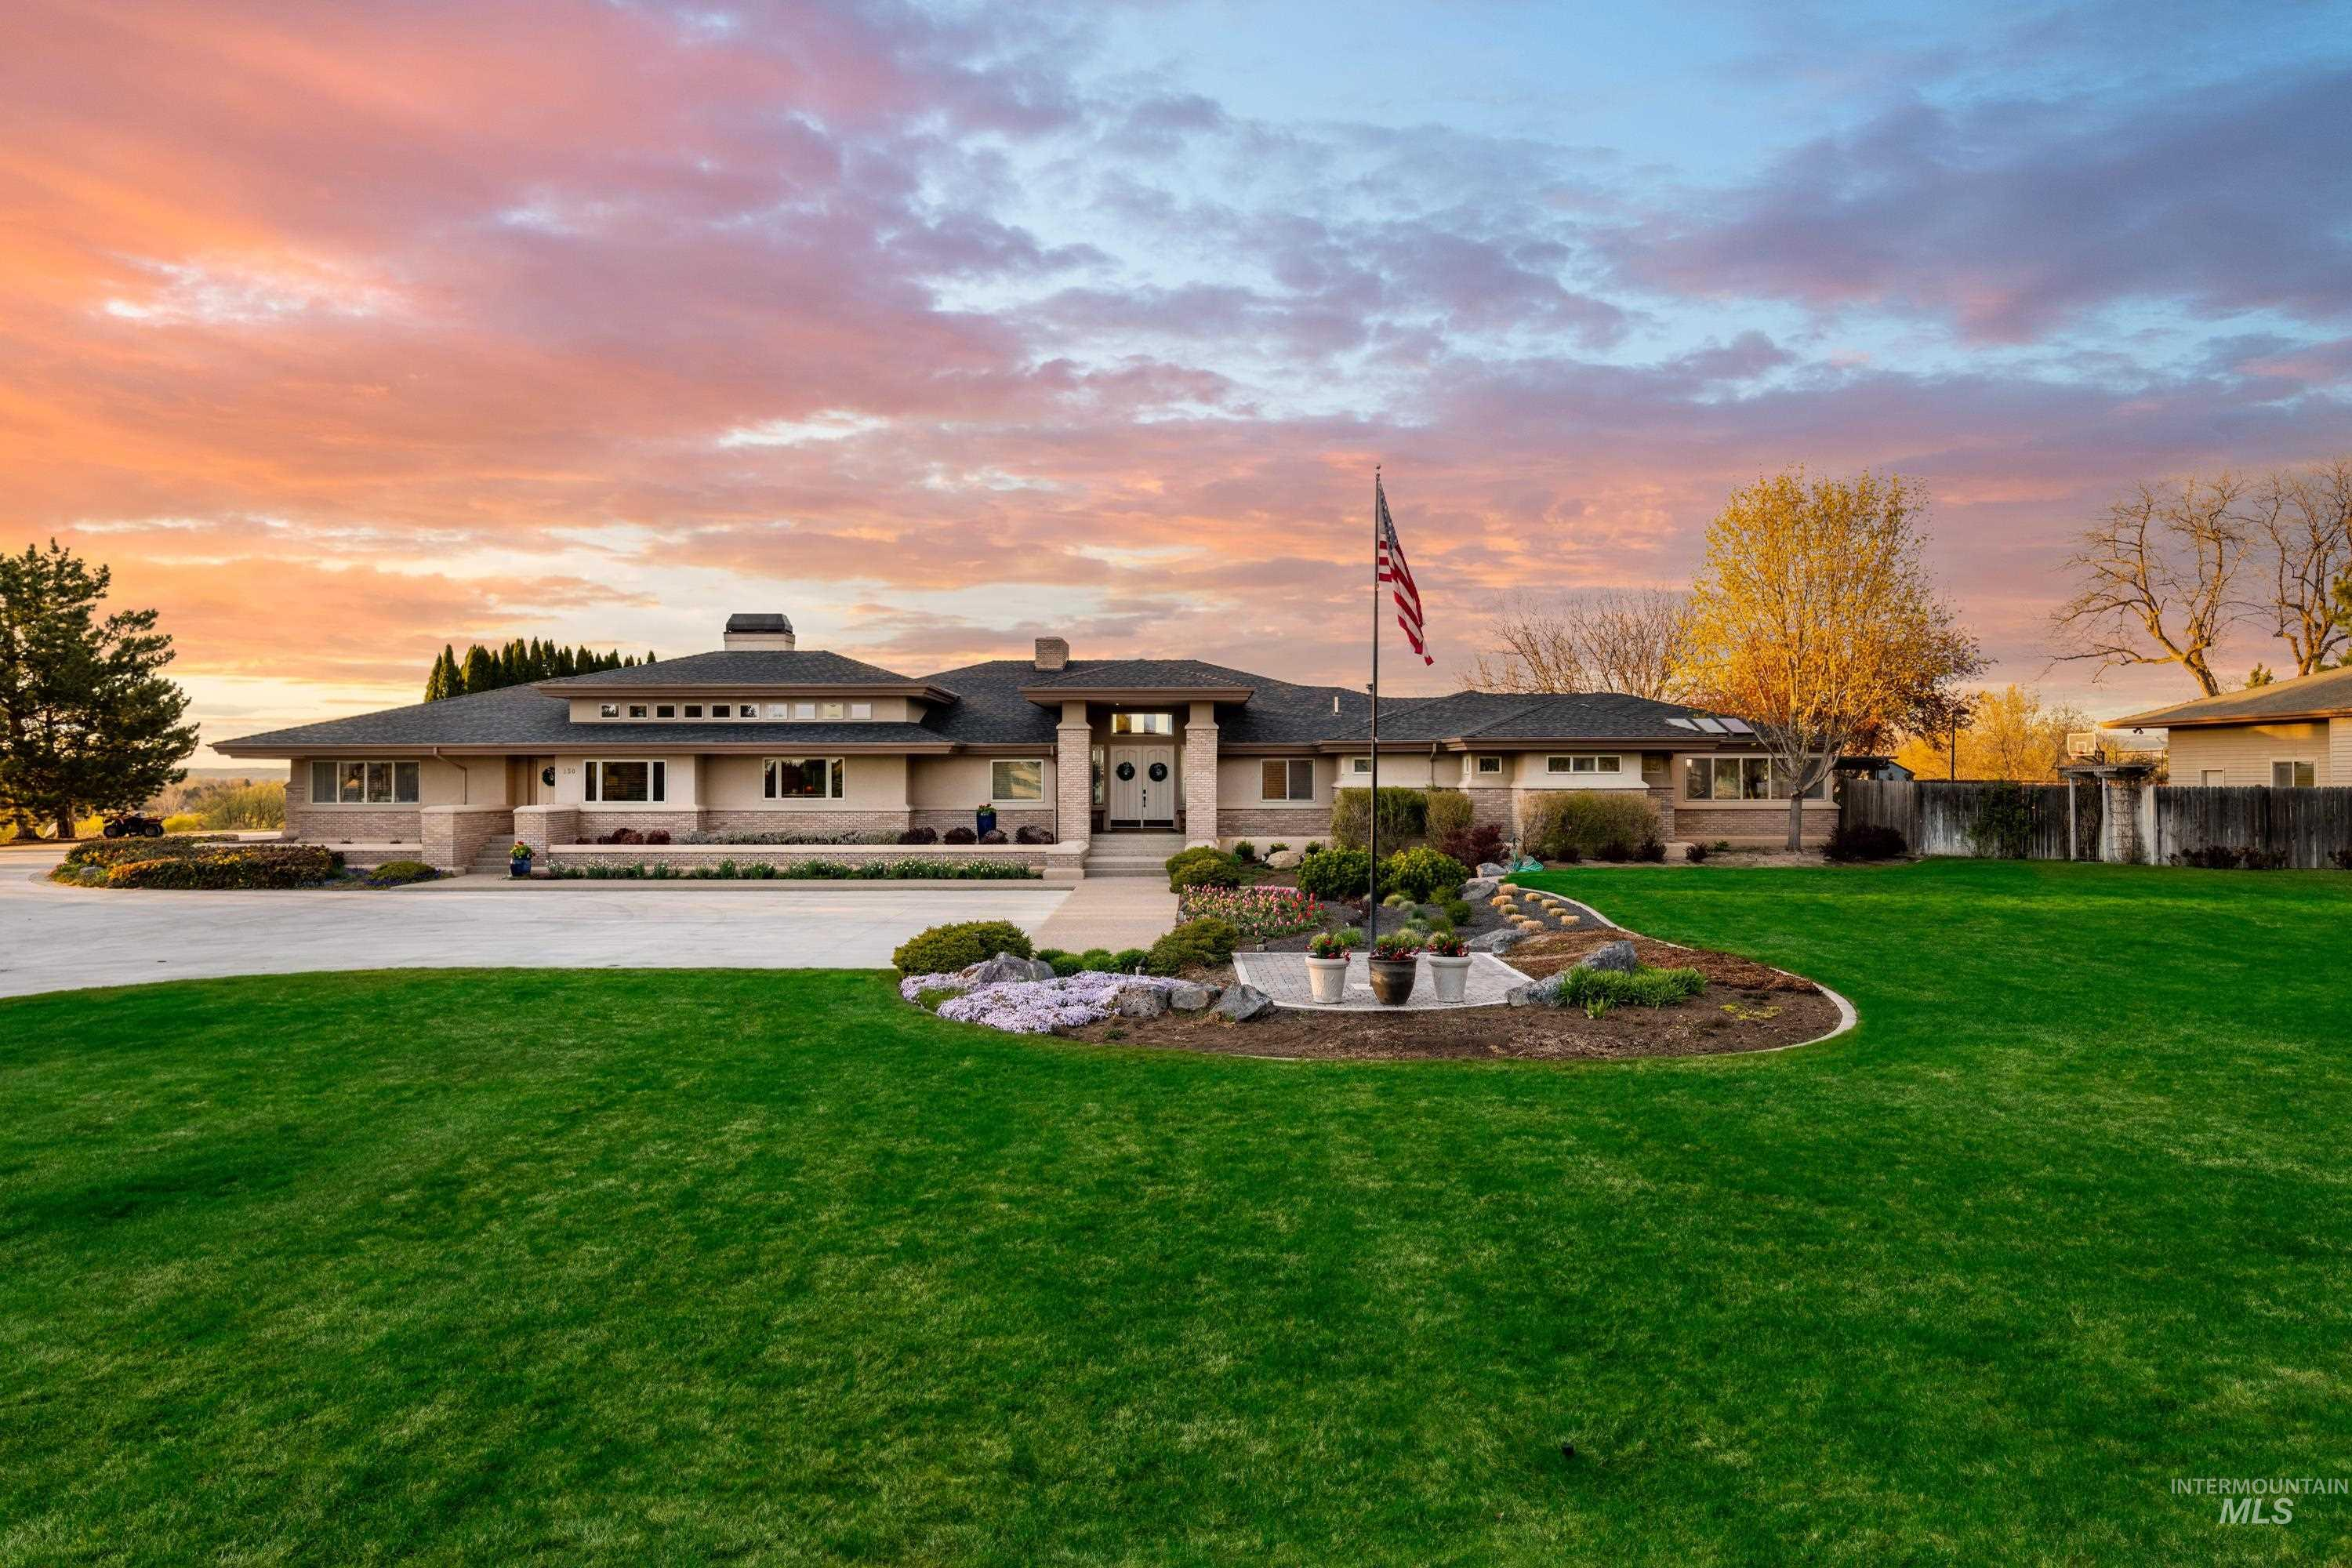 Set on a prime rim lot overlooking the Boise River with views of Squaw Butte, this Trey Hoff designed masterpiece offers nearly 5 acres of space including a detached shop, & a horse barn with riding arena. Wake up to stunning views in the master retreat that features its own sunroom and indoor hot tub. The kitchen features state of the art amenities including Wolf & Thermador appliances, and beautiful granite finishes. The backyard oasis has multiple entertaining spaces and a large pool and sport court.